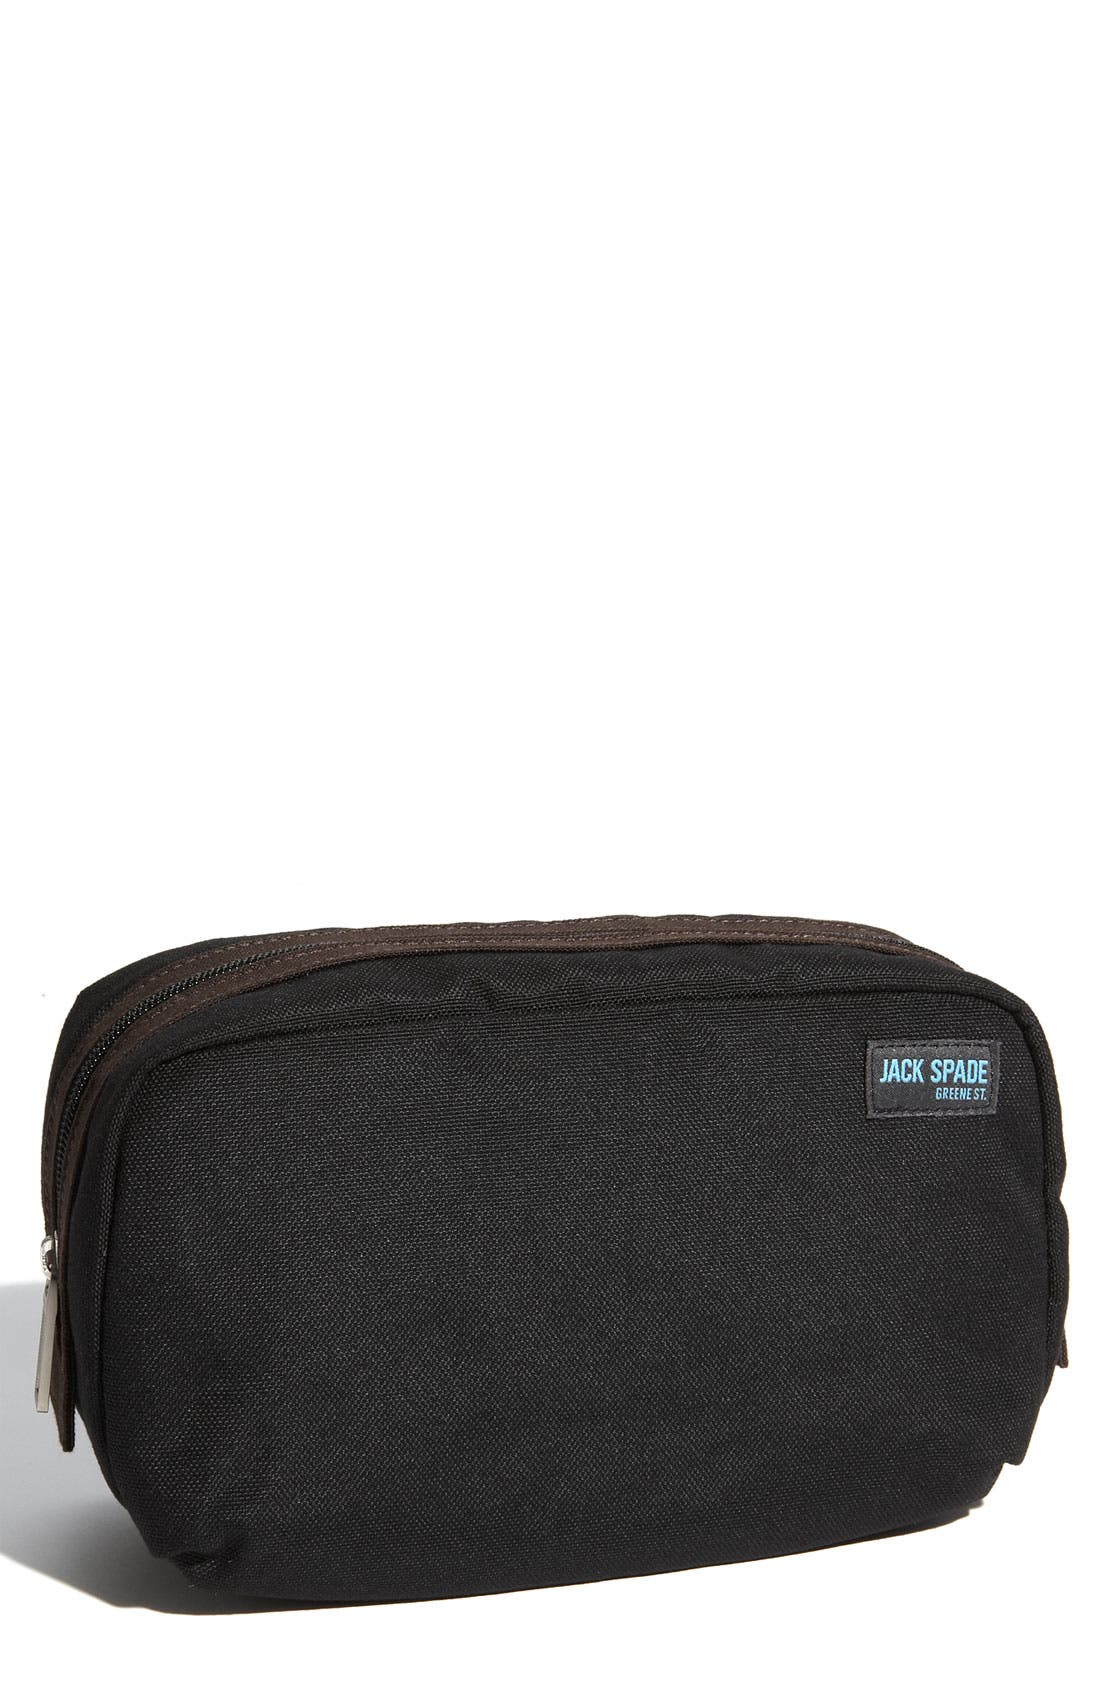 'Trad' Nylon Canvas Toiletry Bag,                             Main thumbnail 1, color,                             001